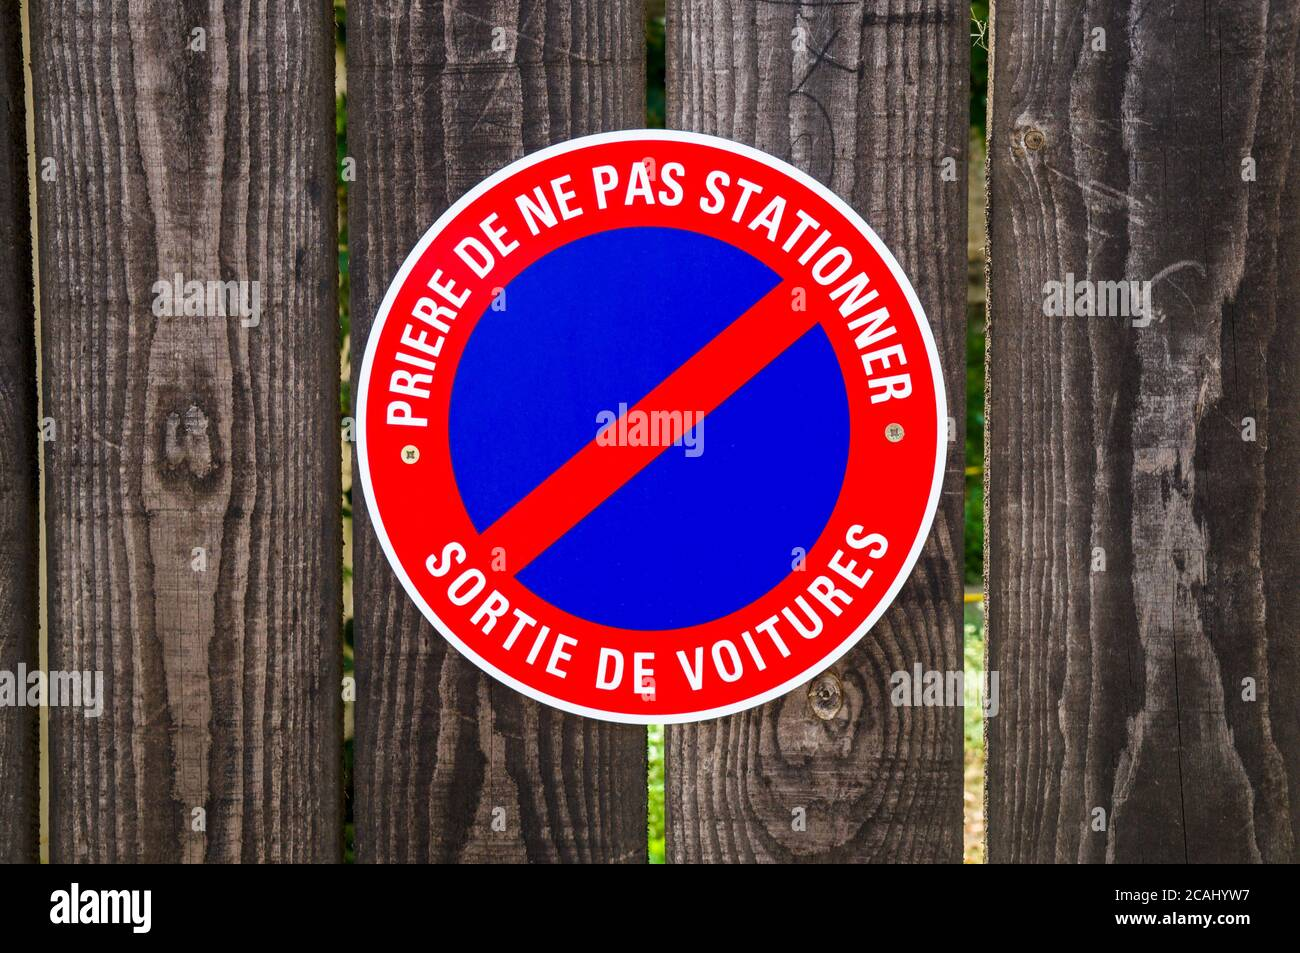 French Parking Sign Banque D Image Et Photos Page 8 Alamy